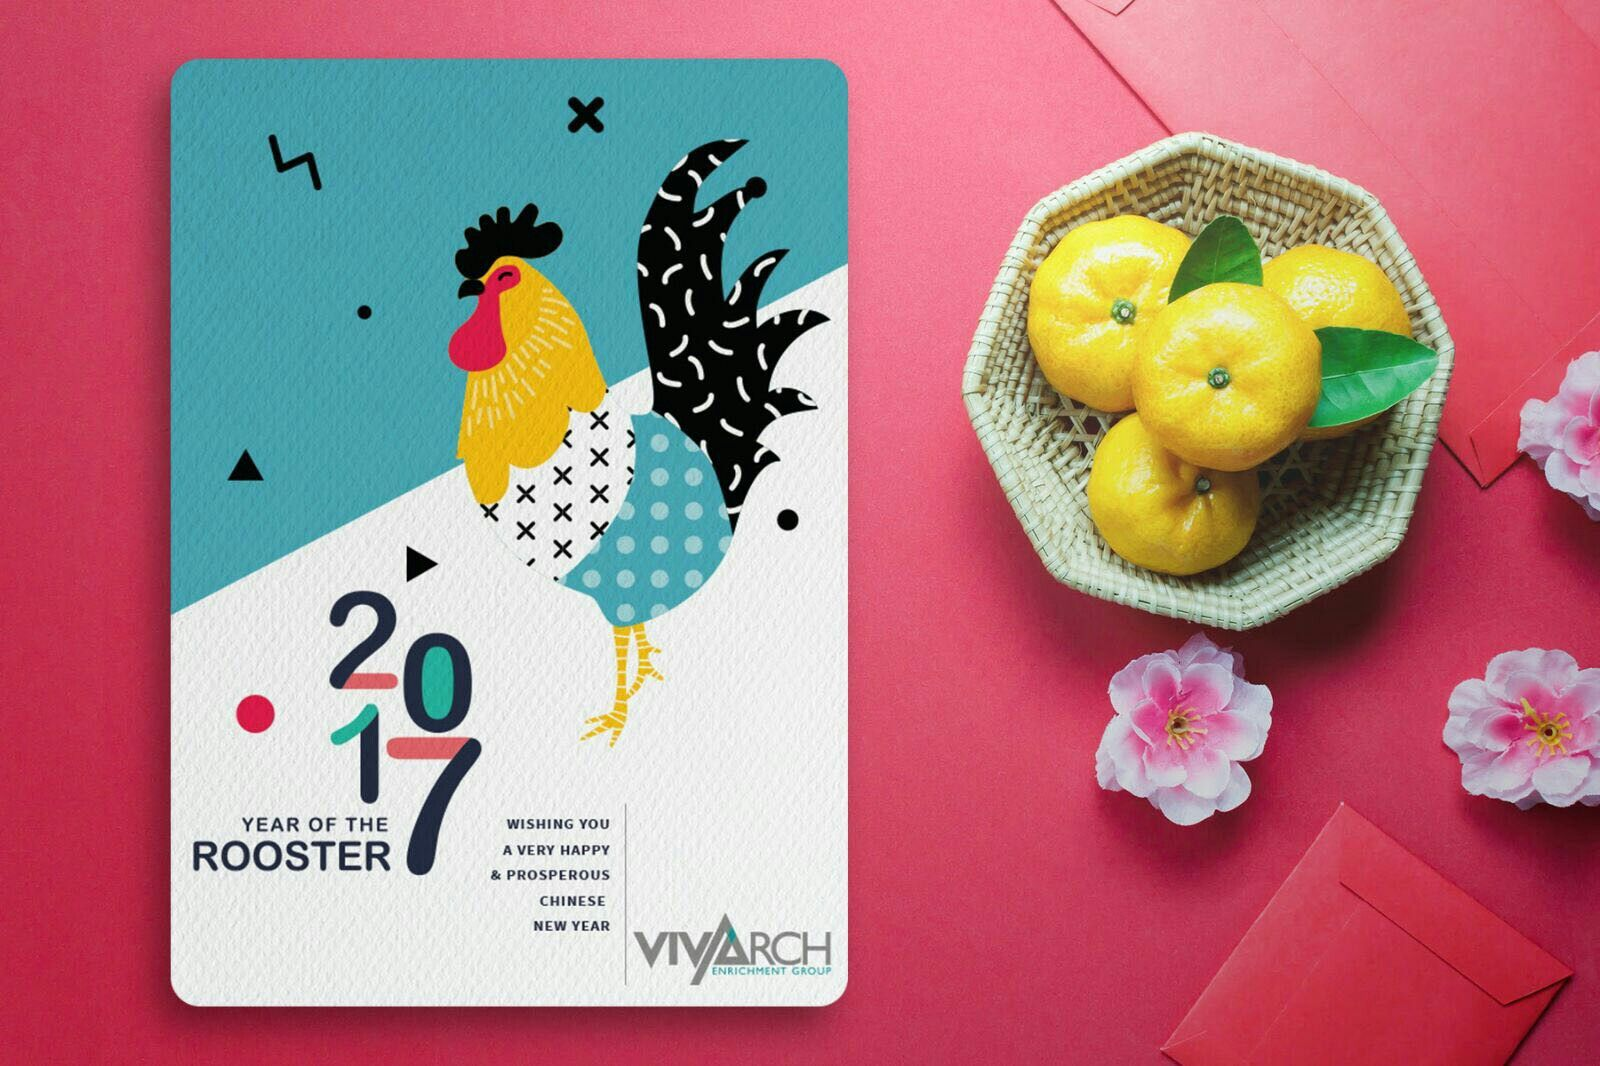 Chinese New Year Greetings For Vivarch Enrichment Group E Cards